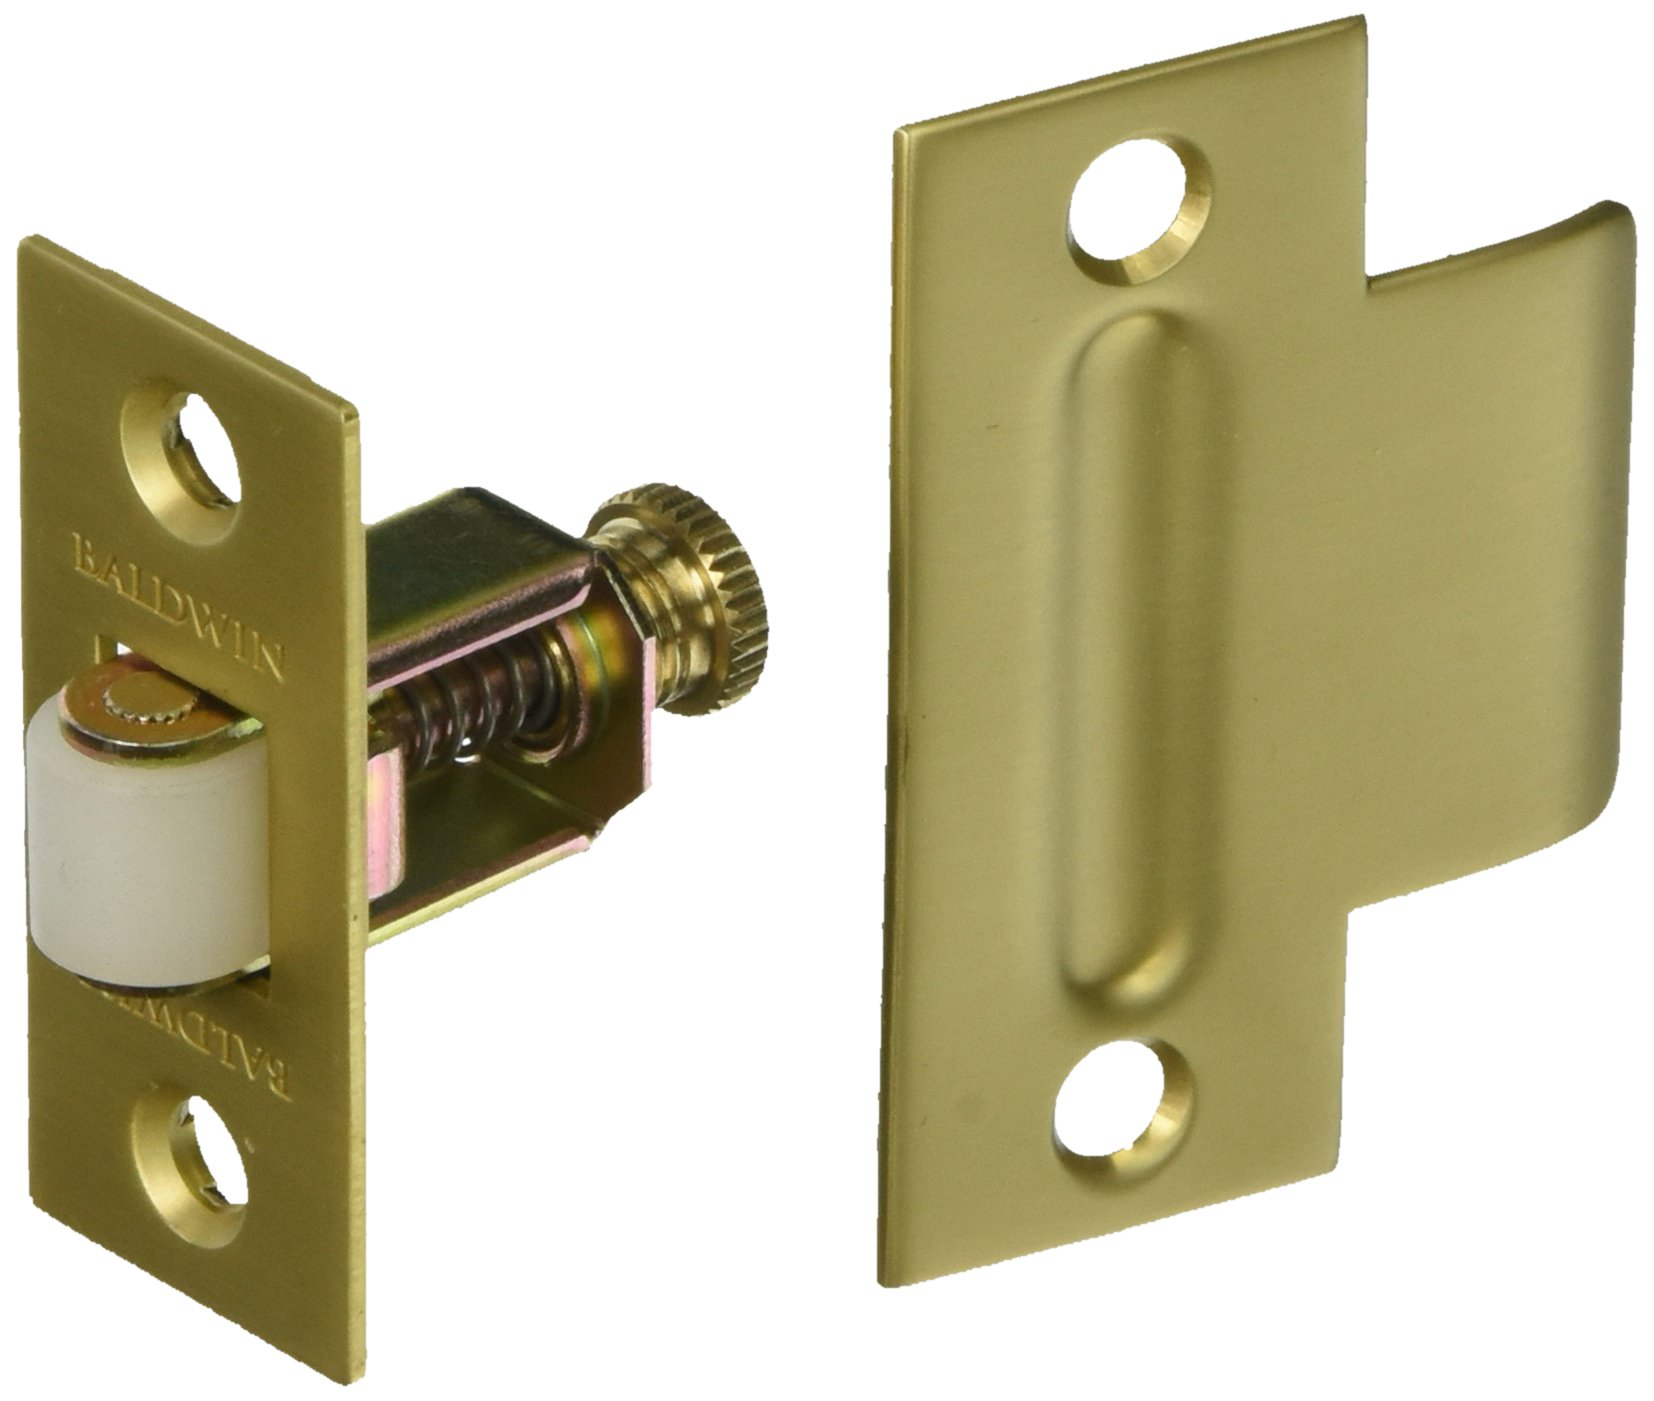 Baldwin 0440034 Adjustable Roller Catch, Unlacquered Vintage Brass